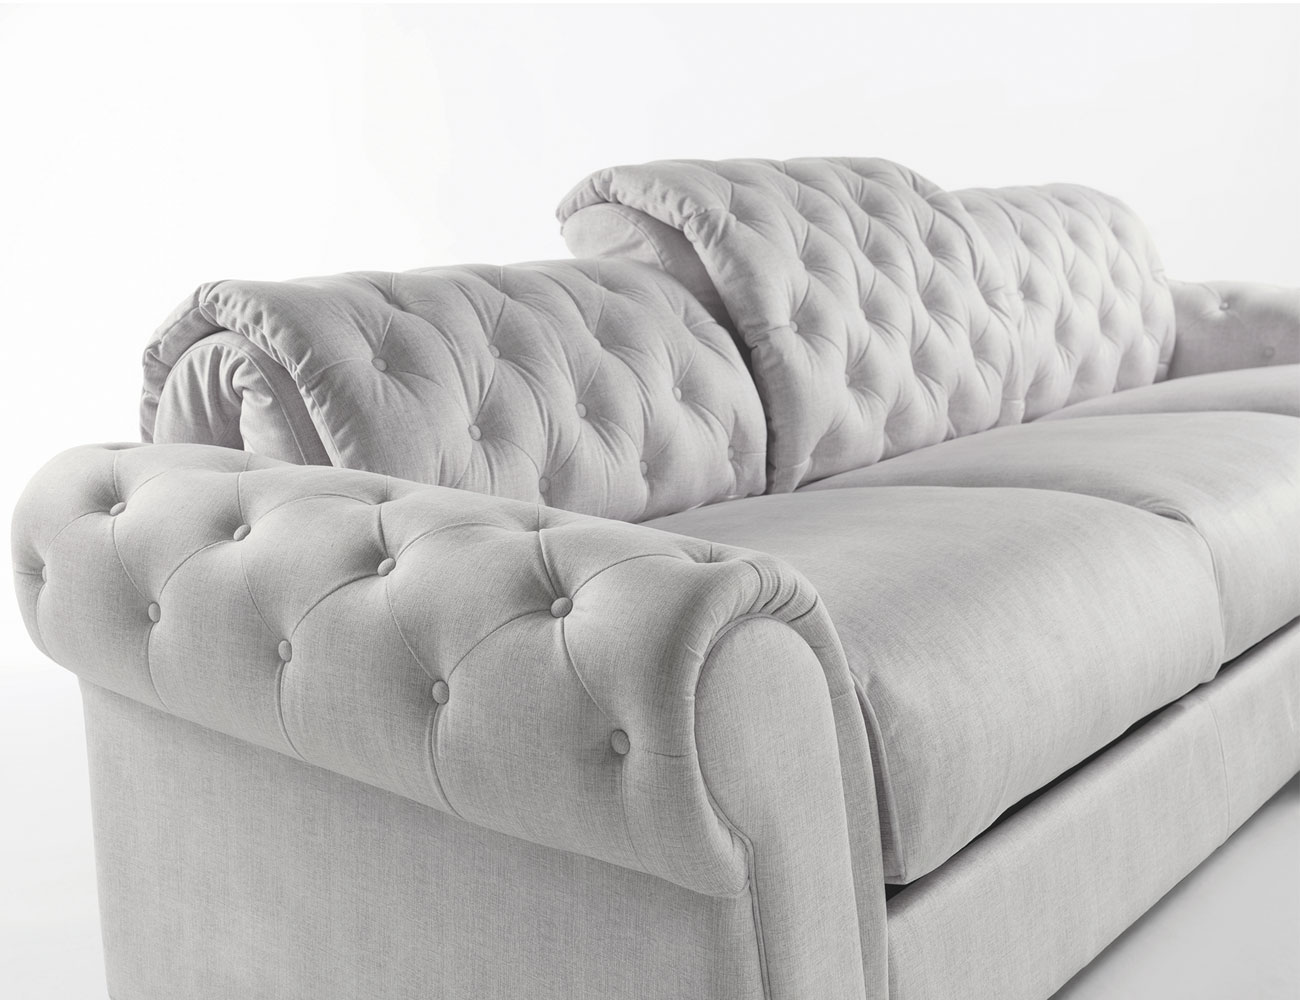 Sofa chaiselongue gran lujo decorativo capitone blanco tela 13